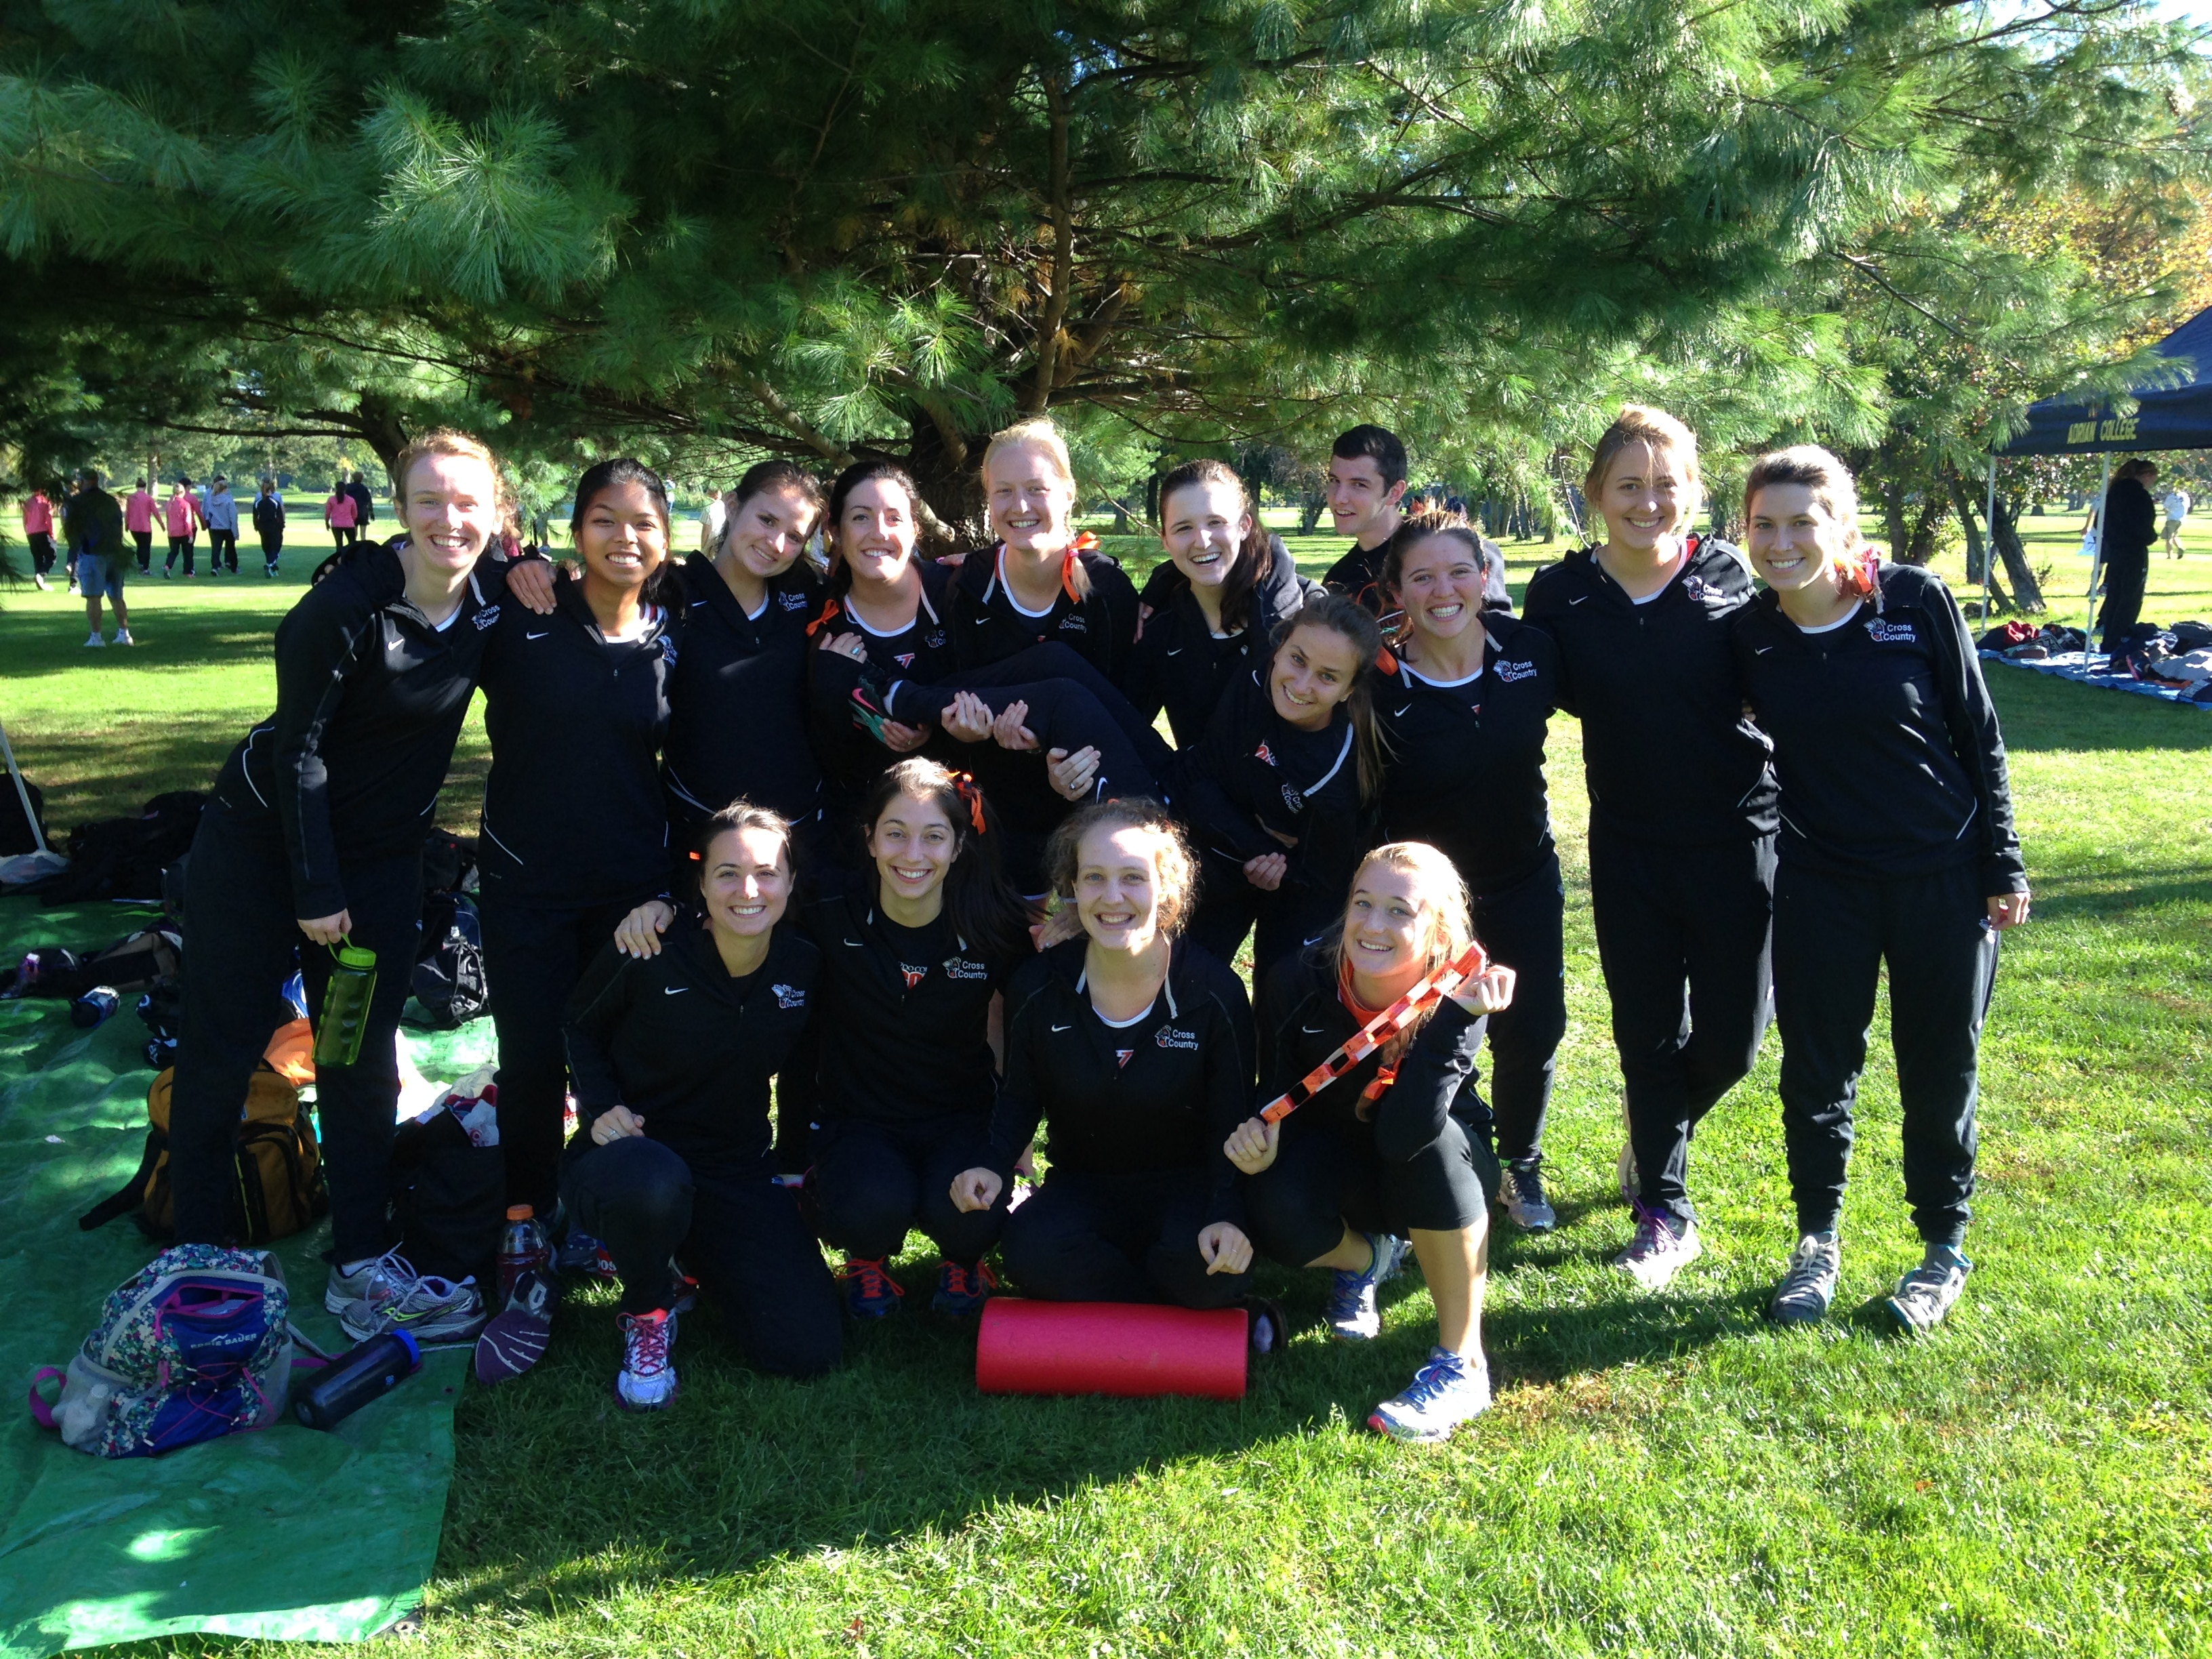 2014 women's cross country team at Kalamazoo College